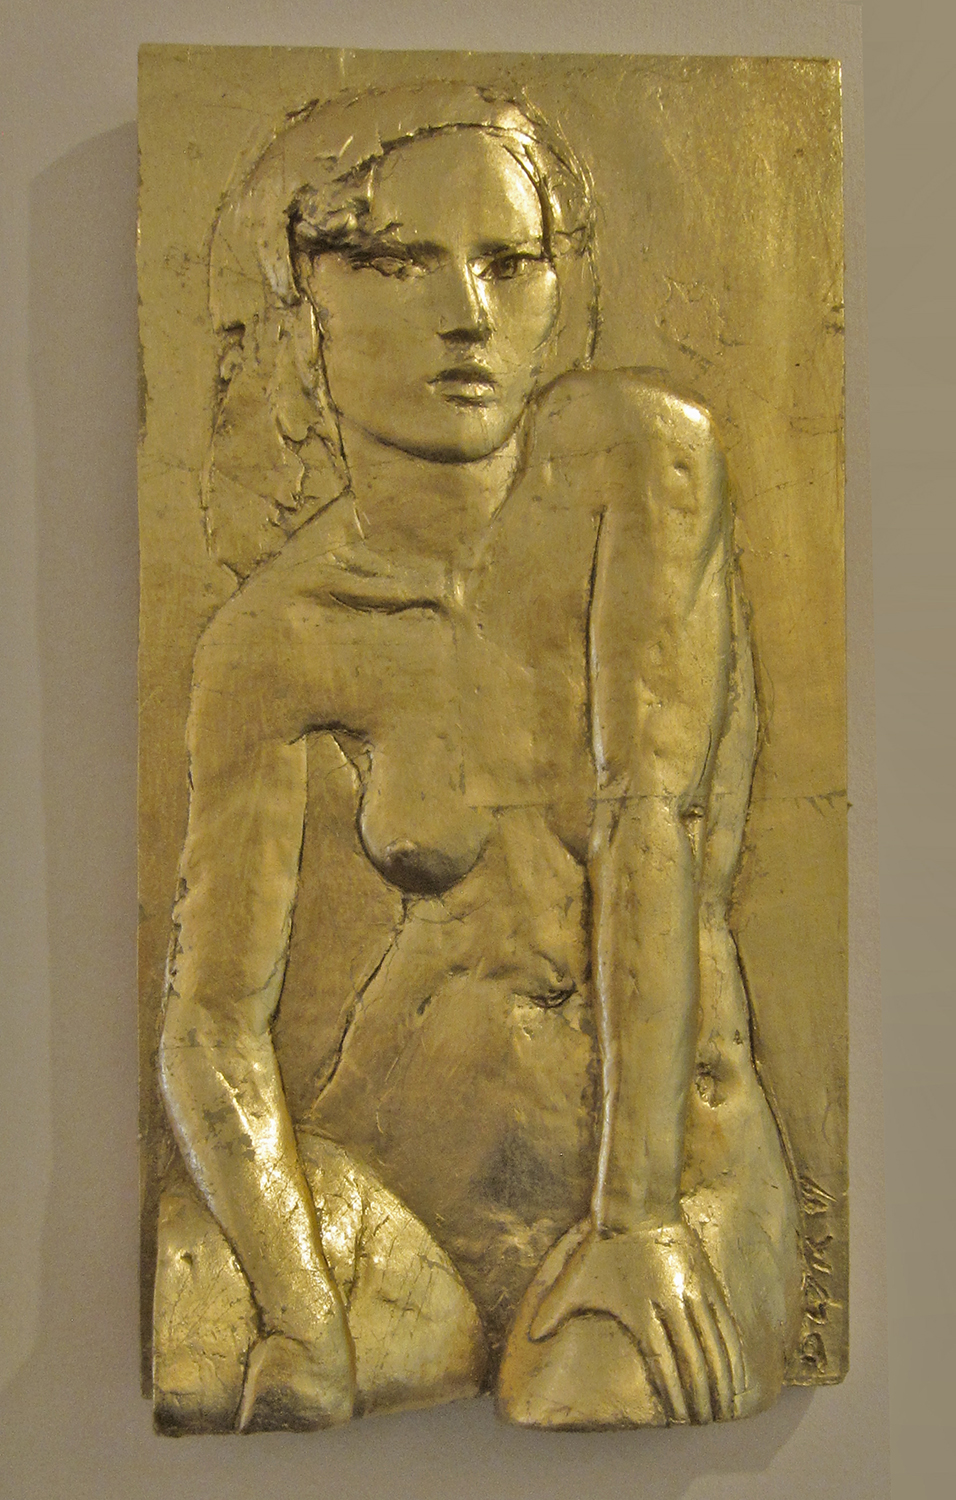 Seated Figure With Gold relief sculpture